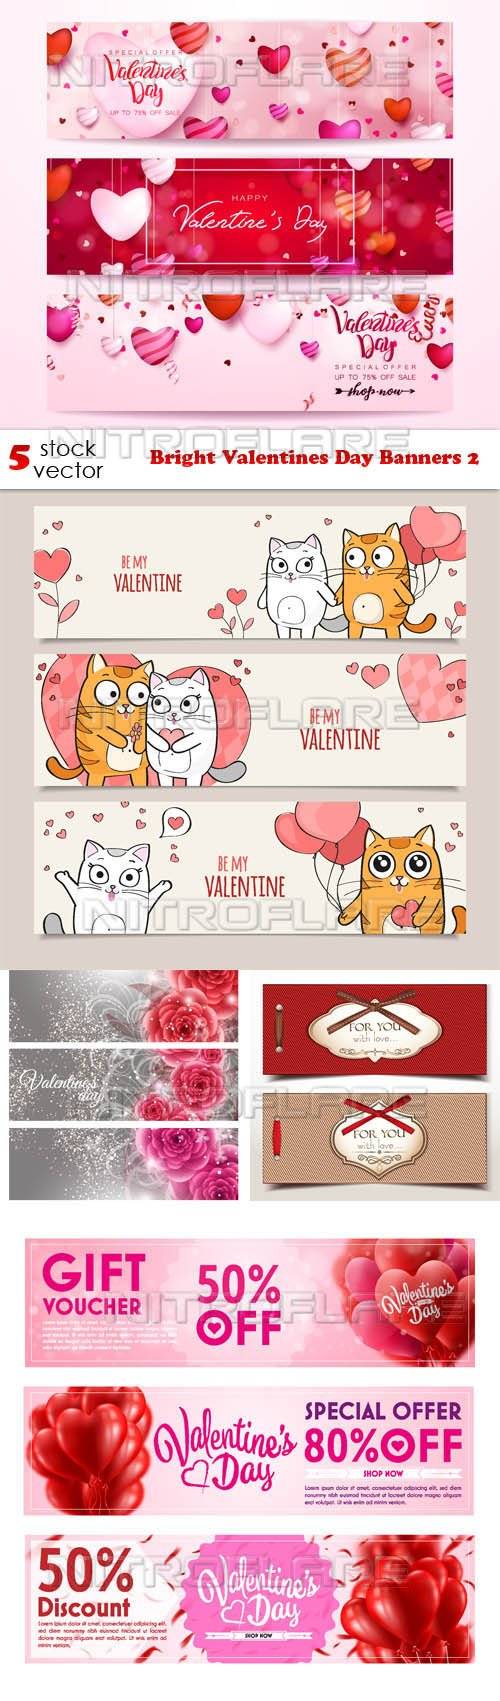 Vectors - Bright Valentines Day Banners 2